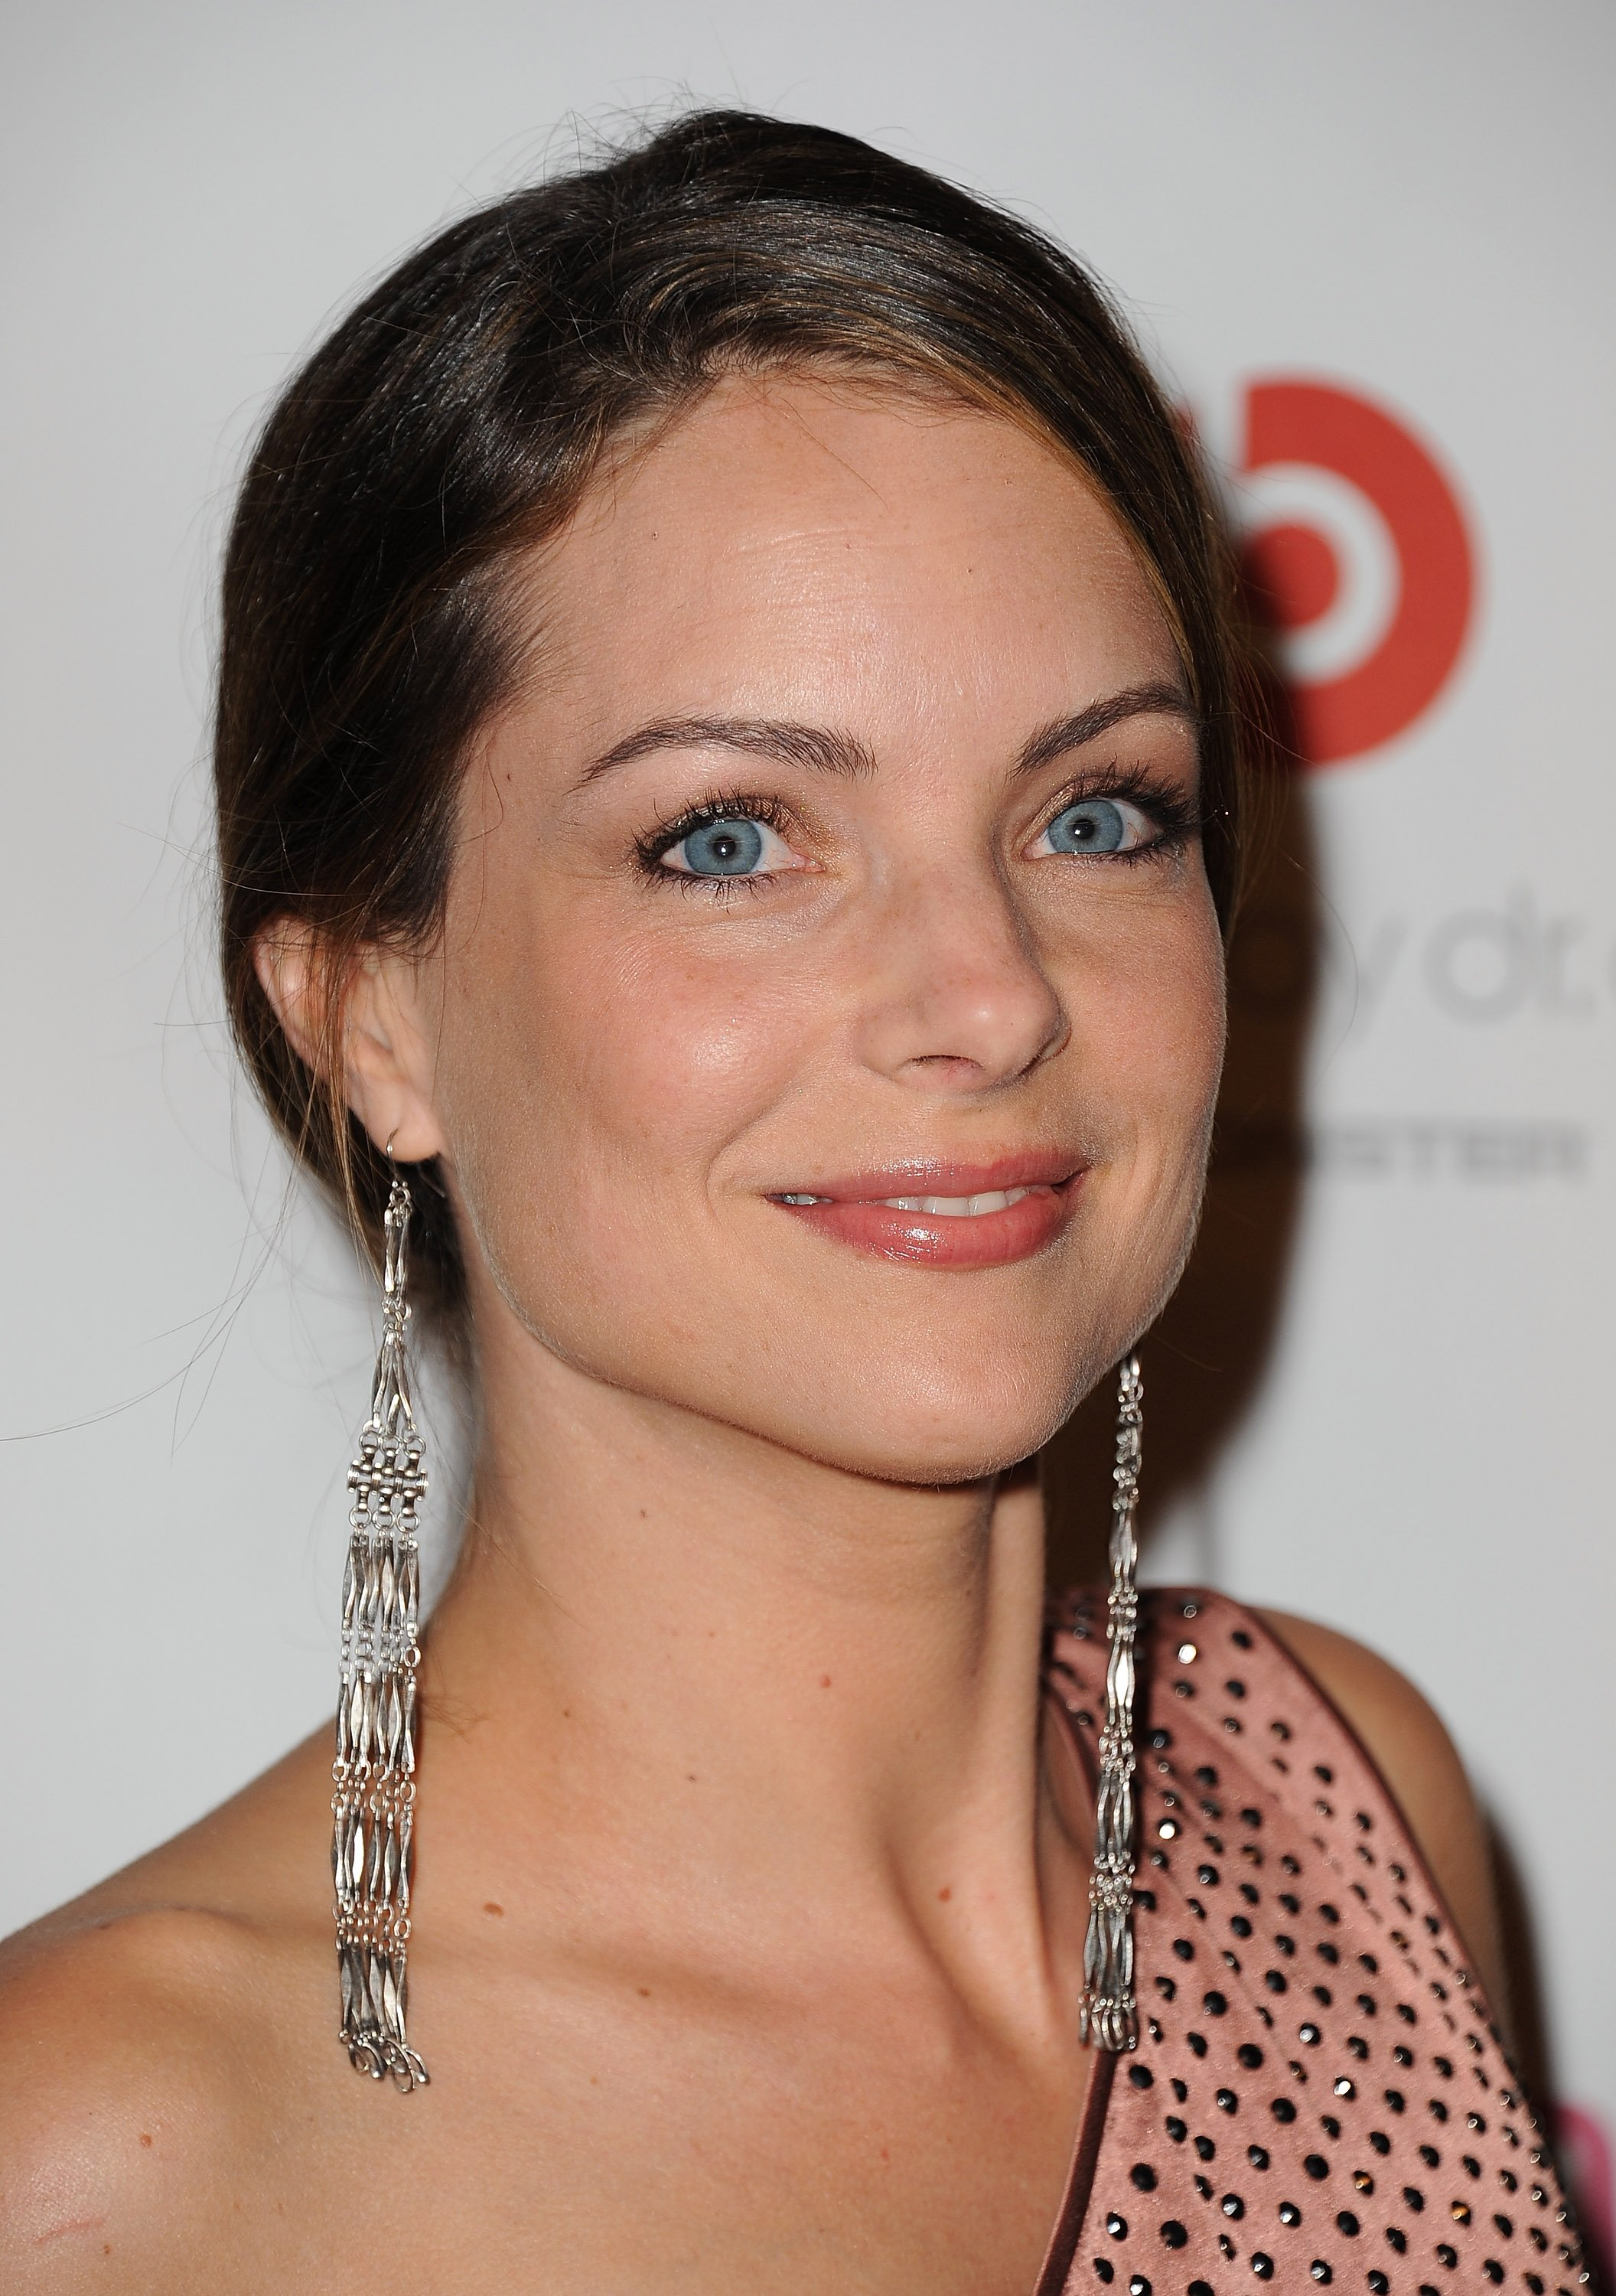 Kimberly williams paisley panties consider